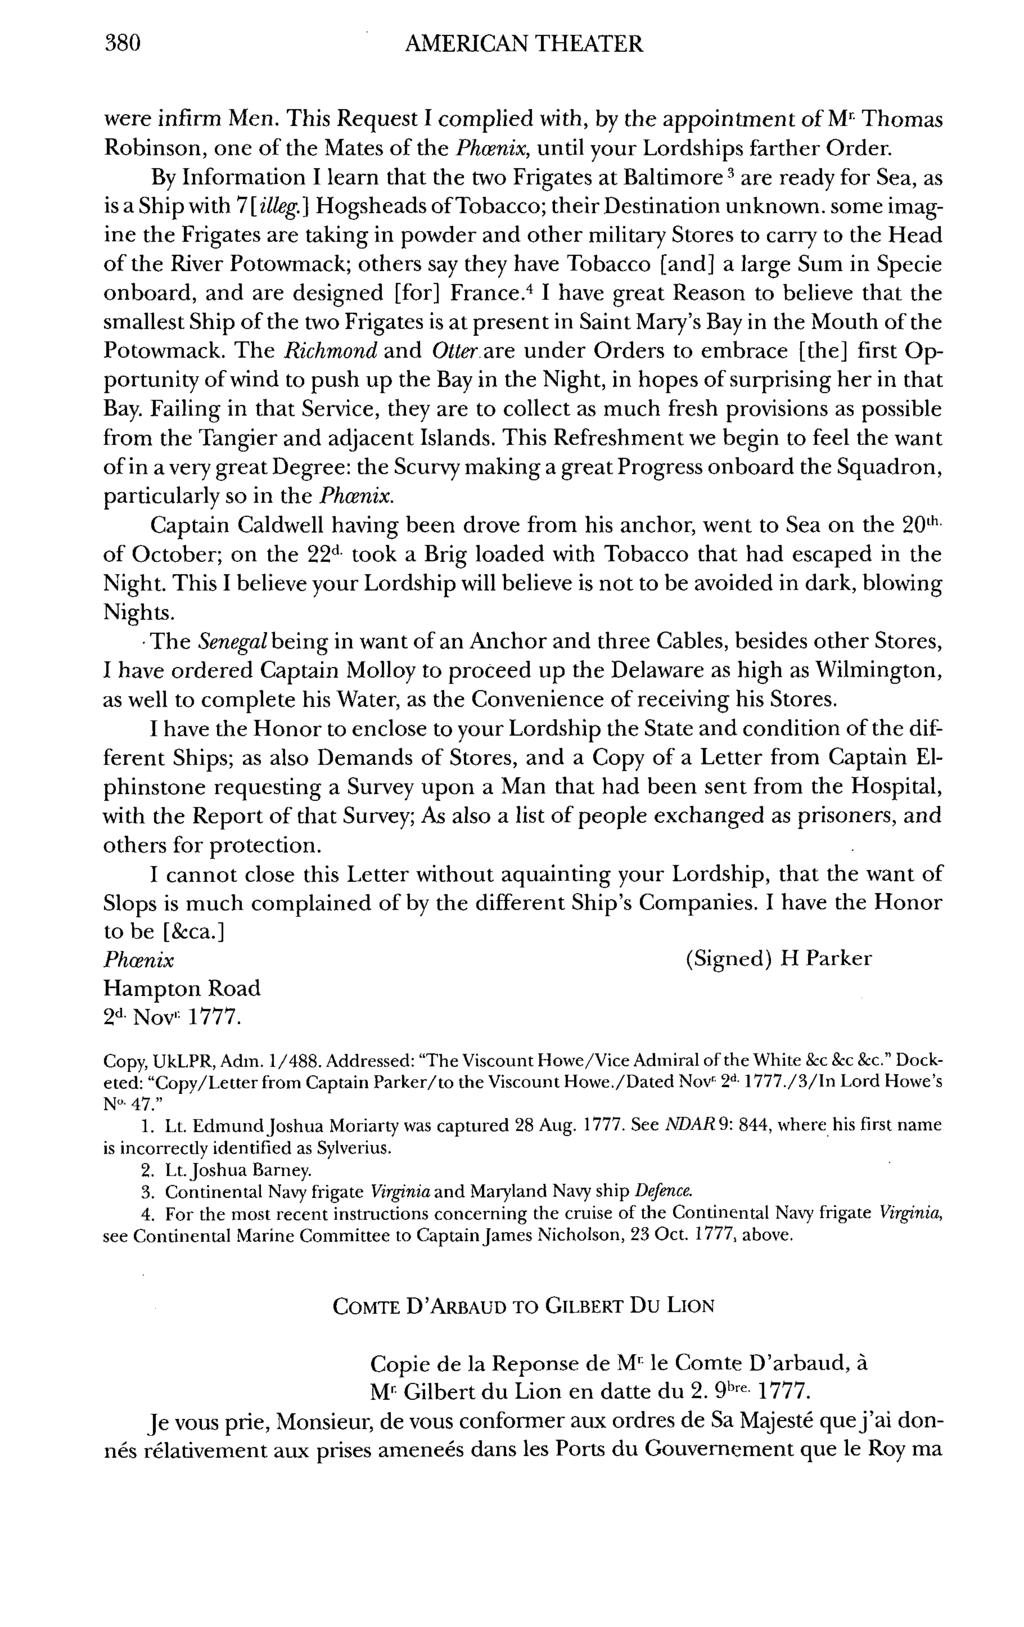 Naval Documents of The American Revolution - PDF